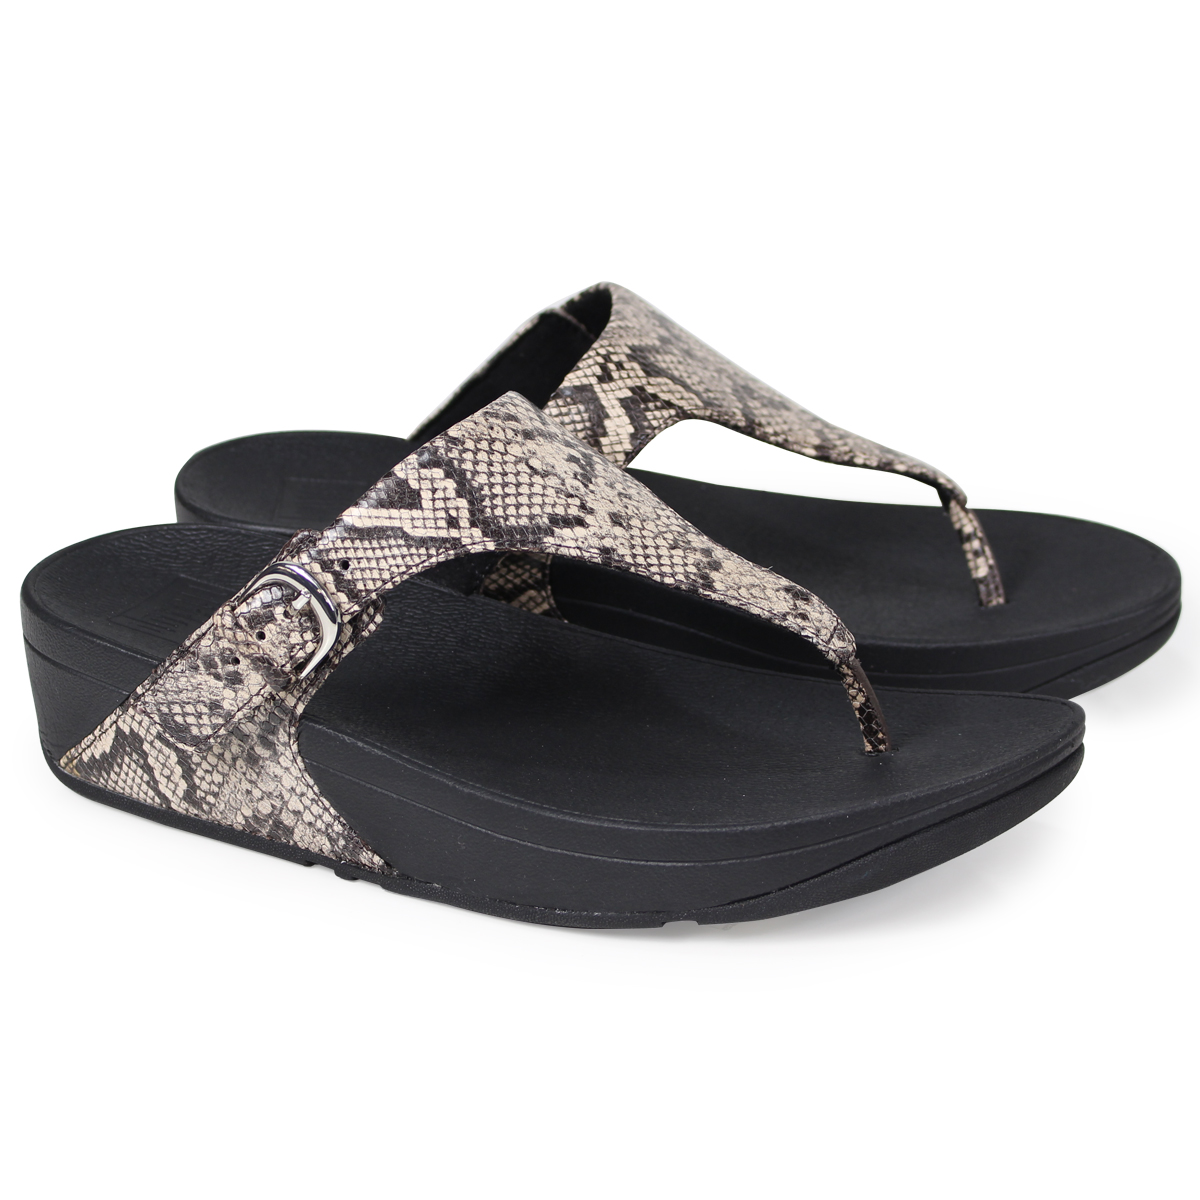 f2b9fcccbc51 Whats up Sports  FitFlop SKINNY TOE-THONG SANDALS SNAKE PRINT ...